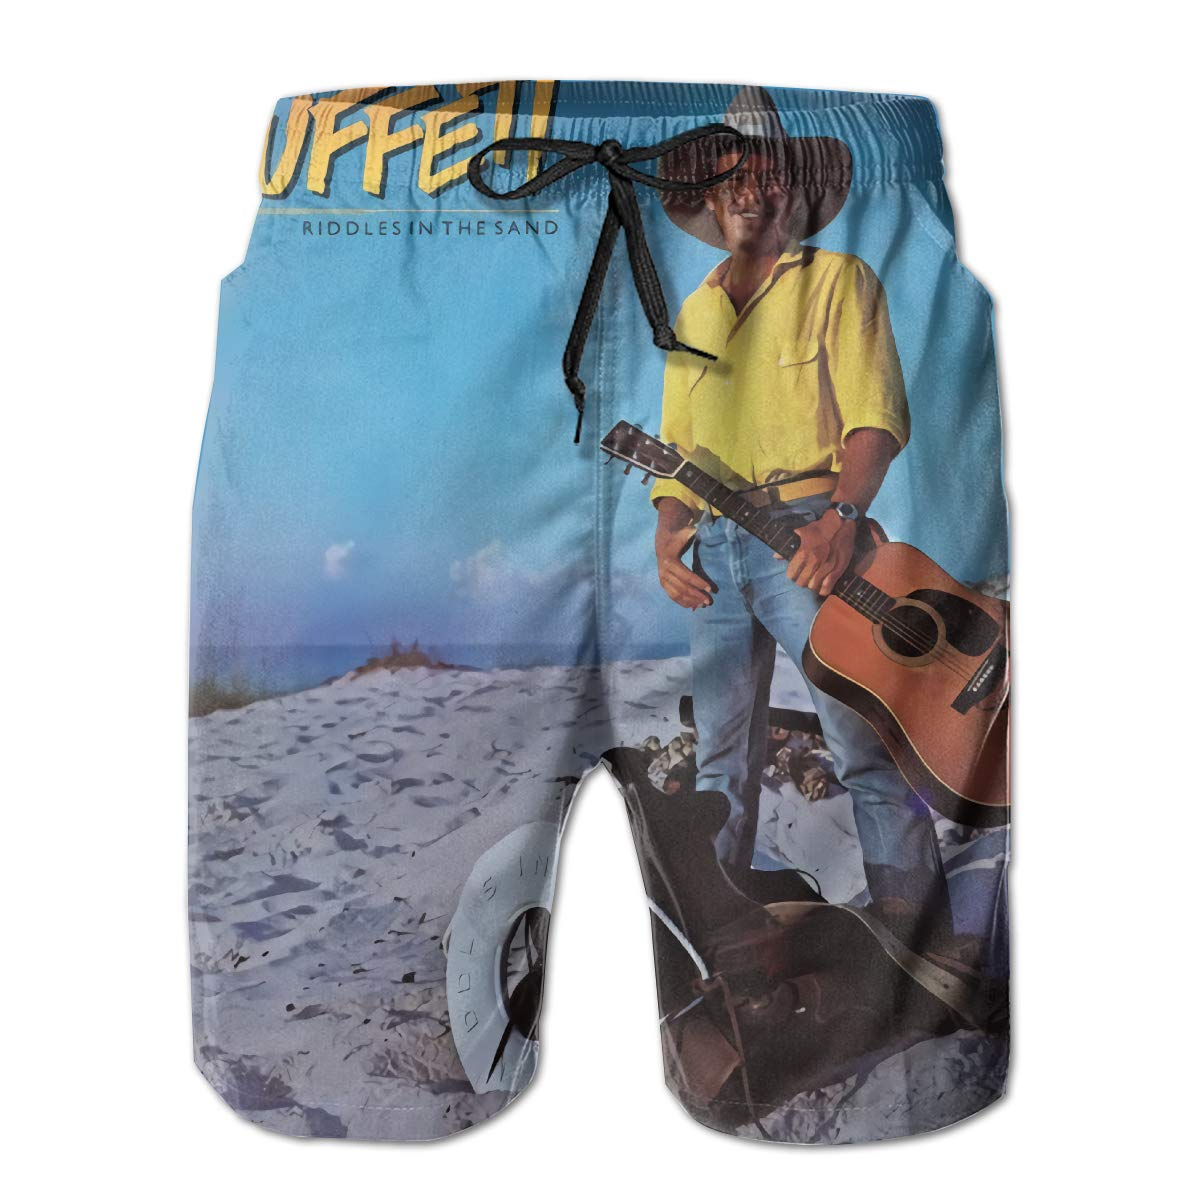 Jimmy Buffet Riddles in The Sand Man Summer Beach Shorts Surfing Pants